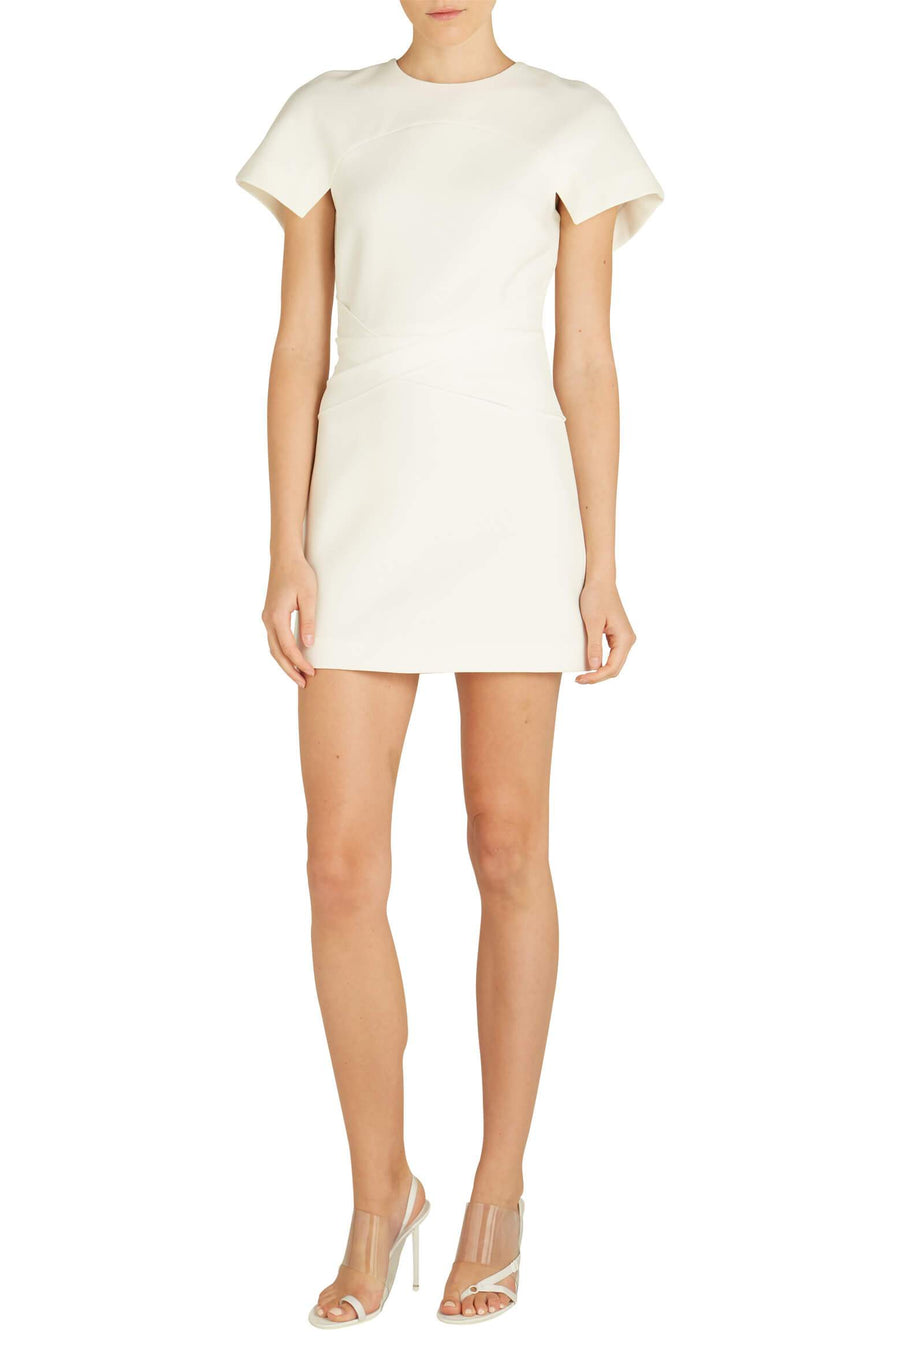 Concave Crepe Mini Dress in white from The New Trend